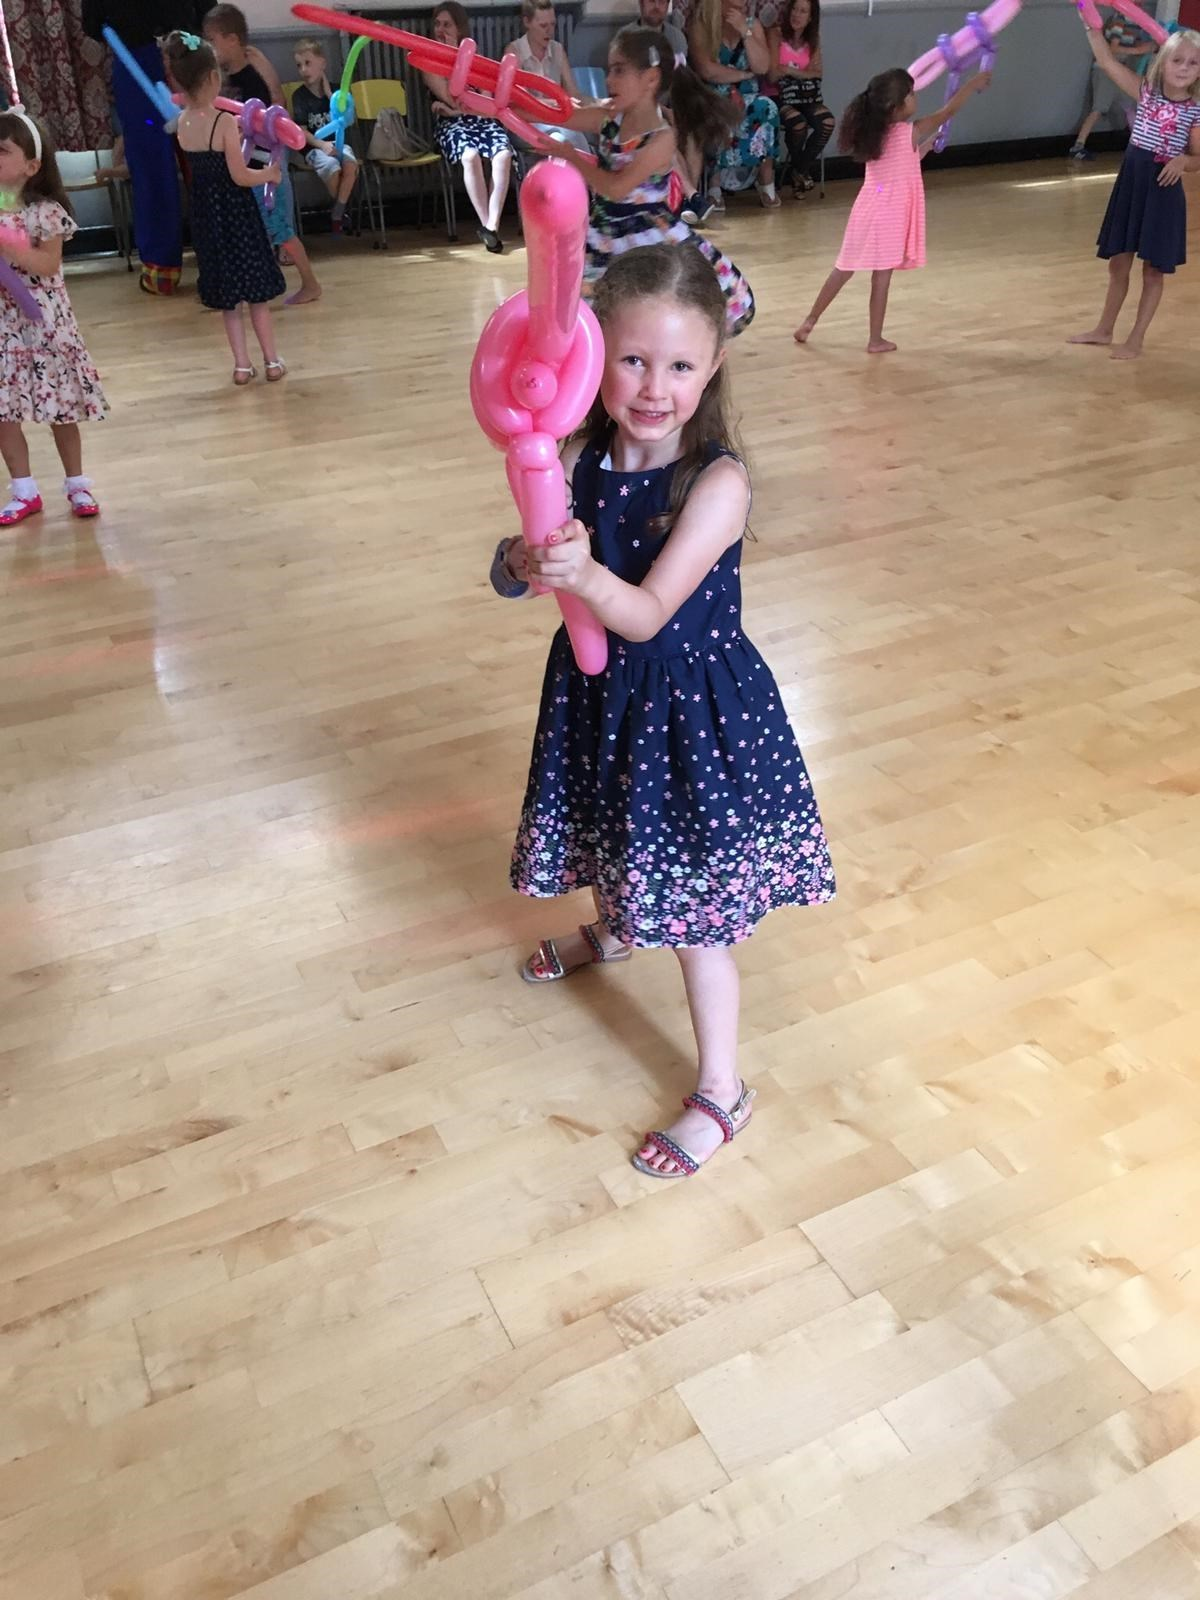 Darcy's 6th Birthday Party - Aug 2018